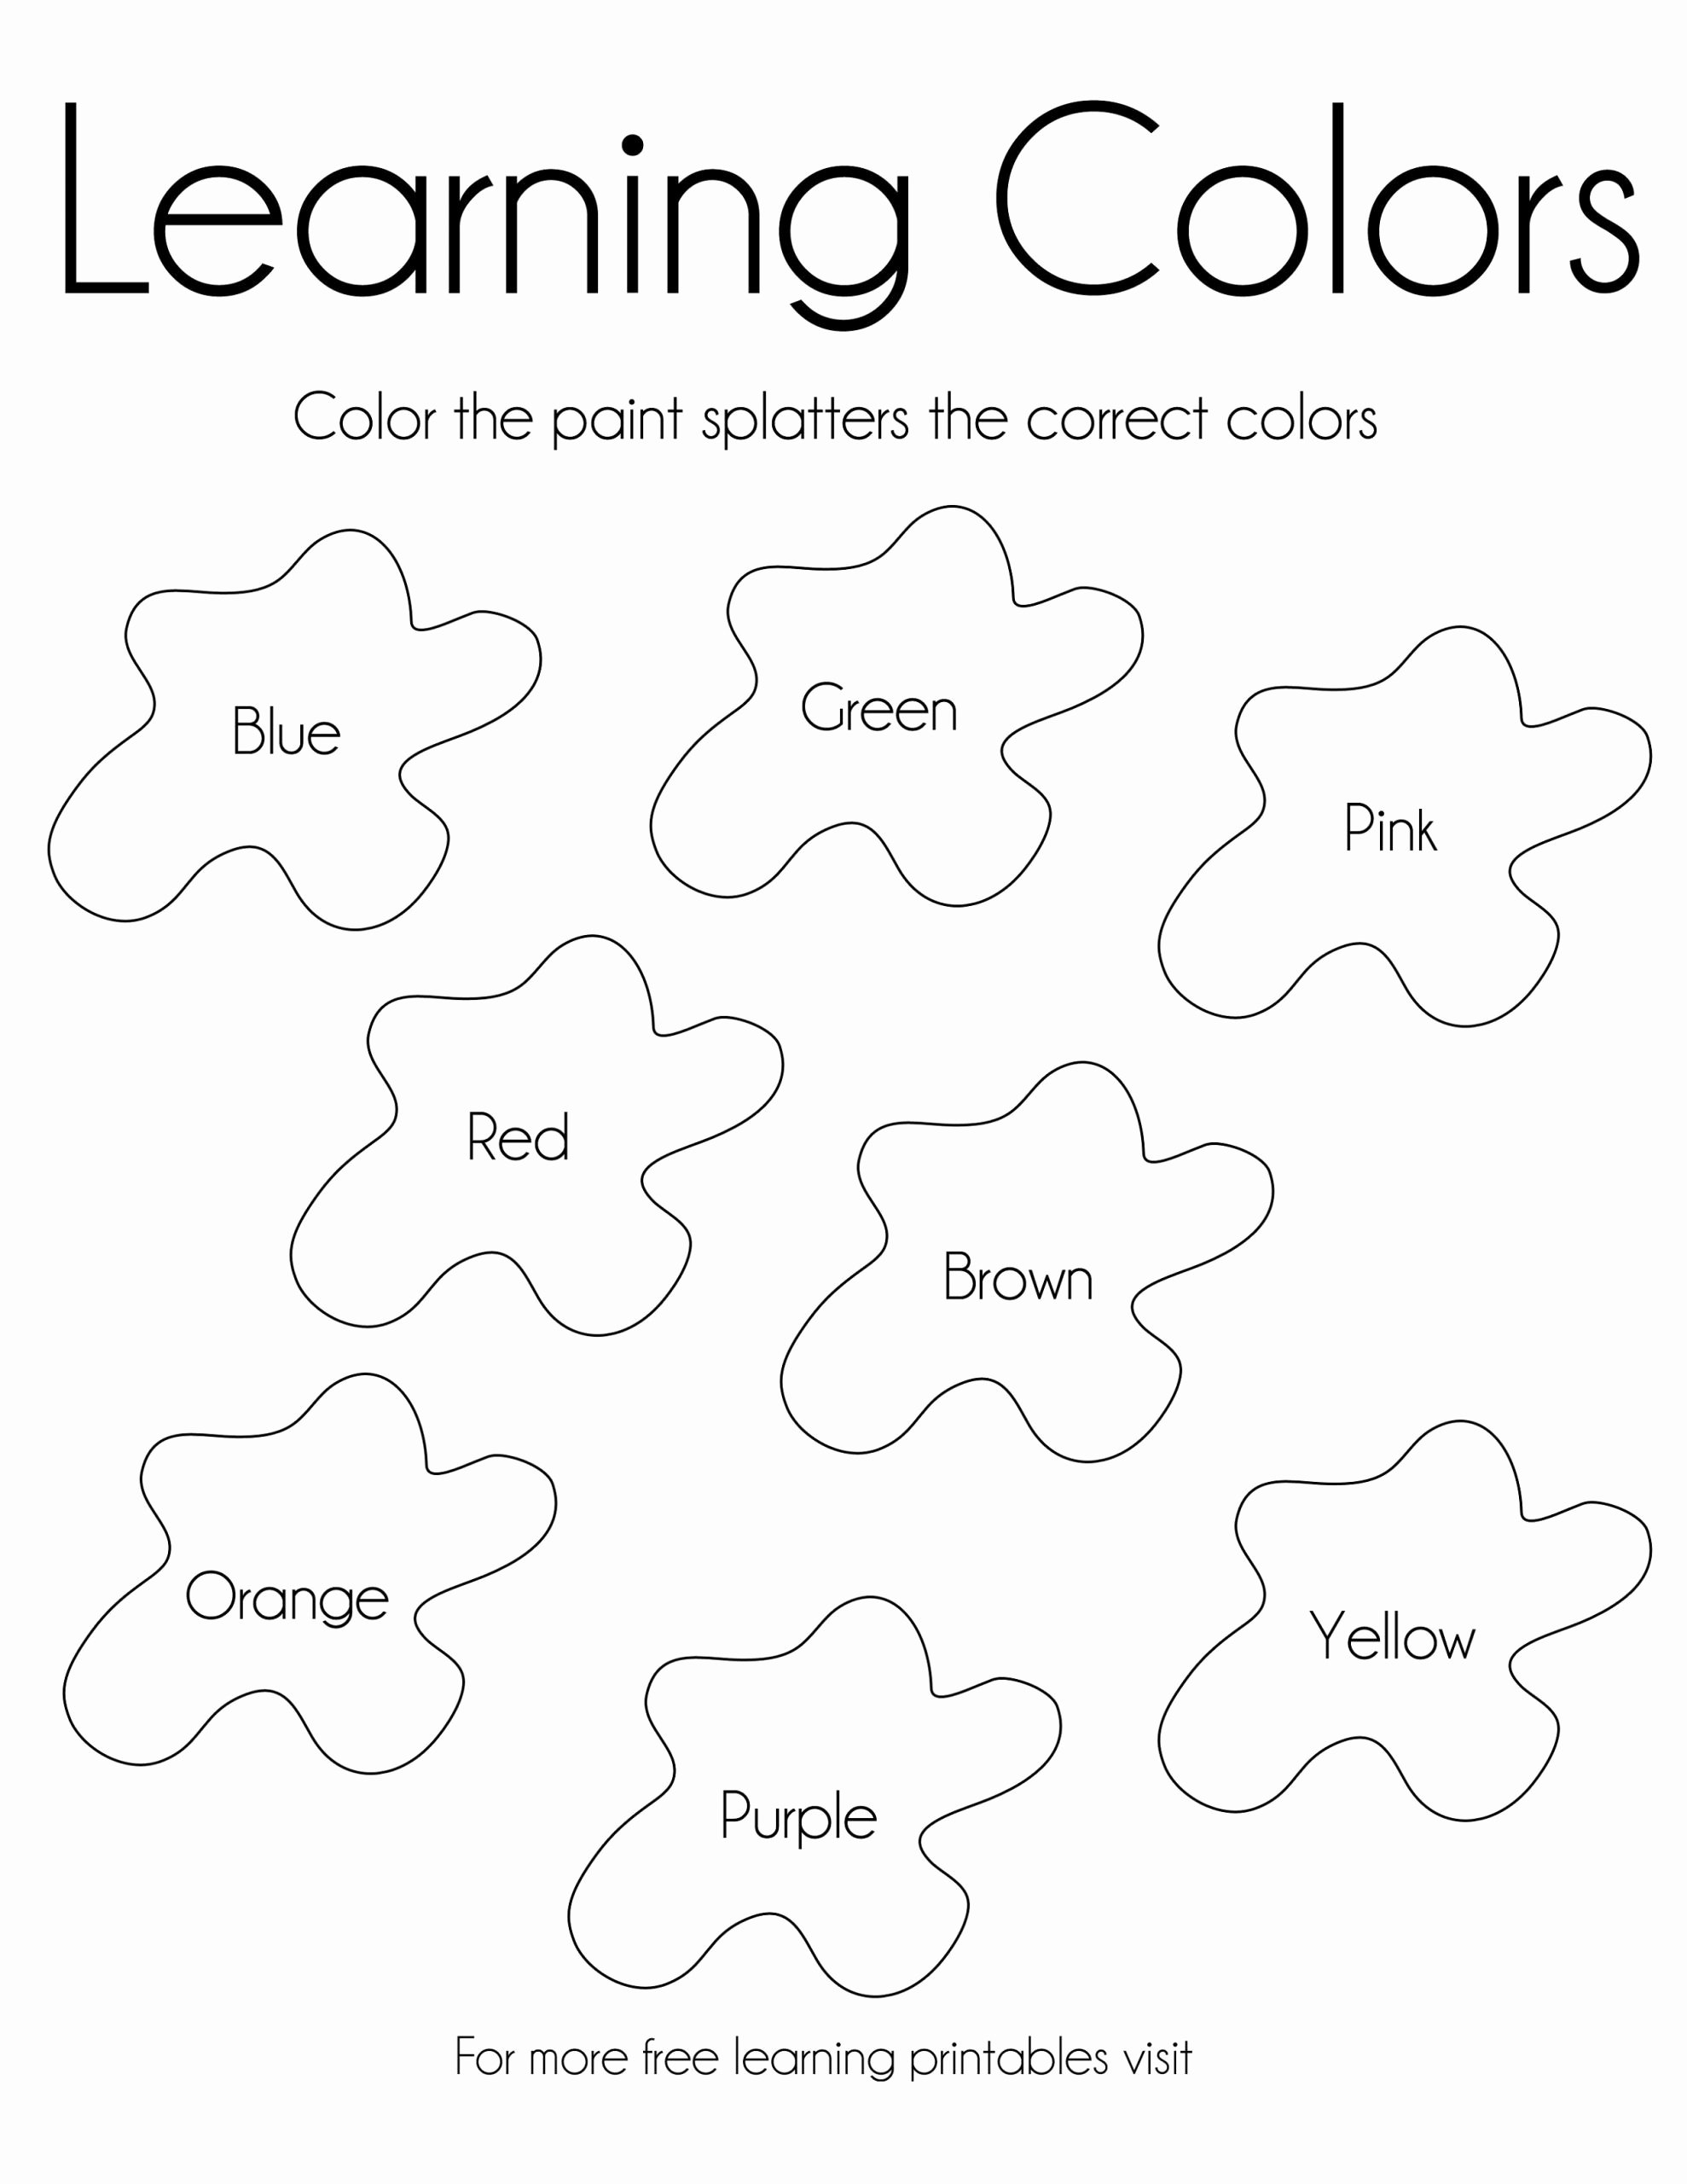 Educational Coloring Worksheets for Preschoolers Lovely 41 Extraordinary Free Educational Coloring Pages Ideas